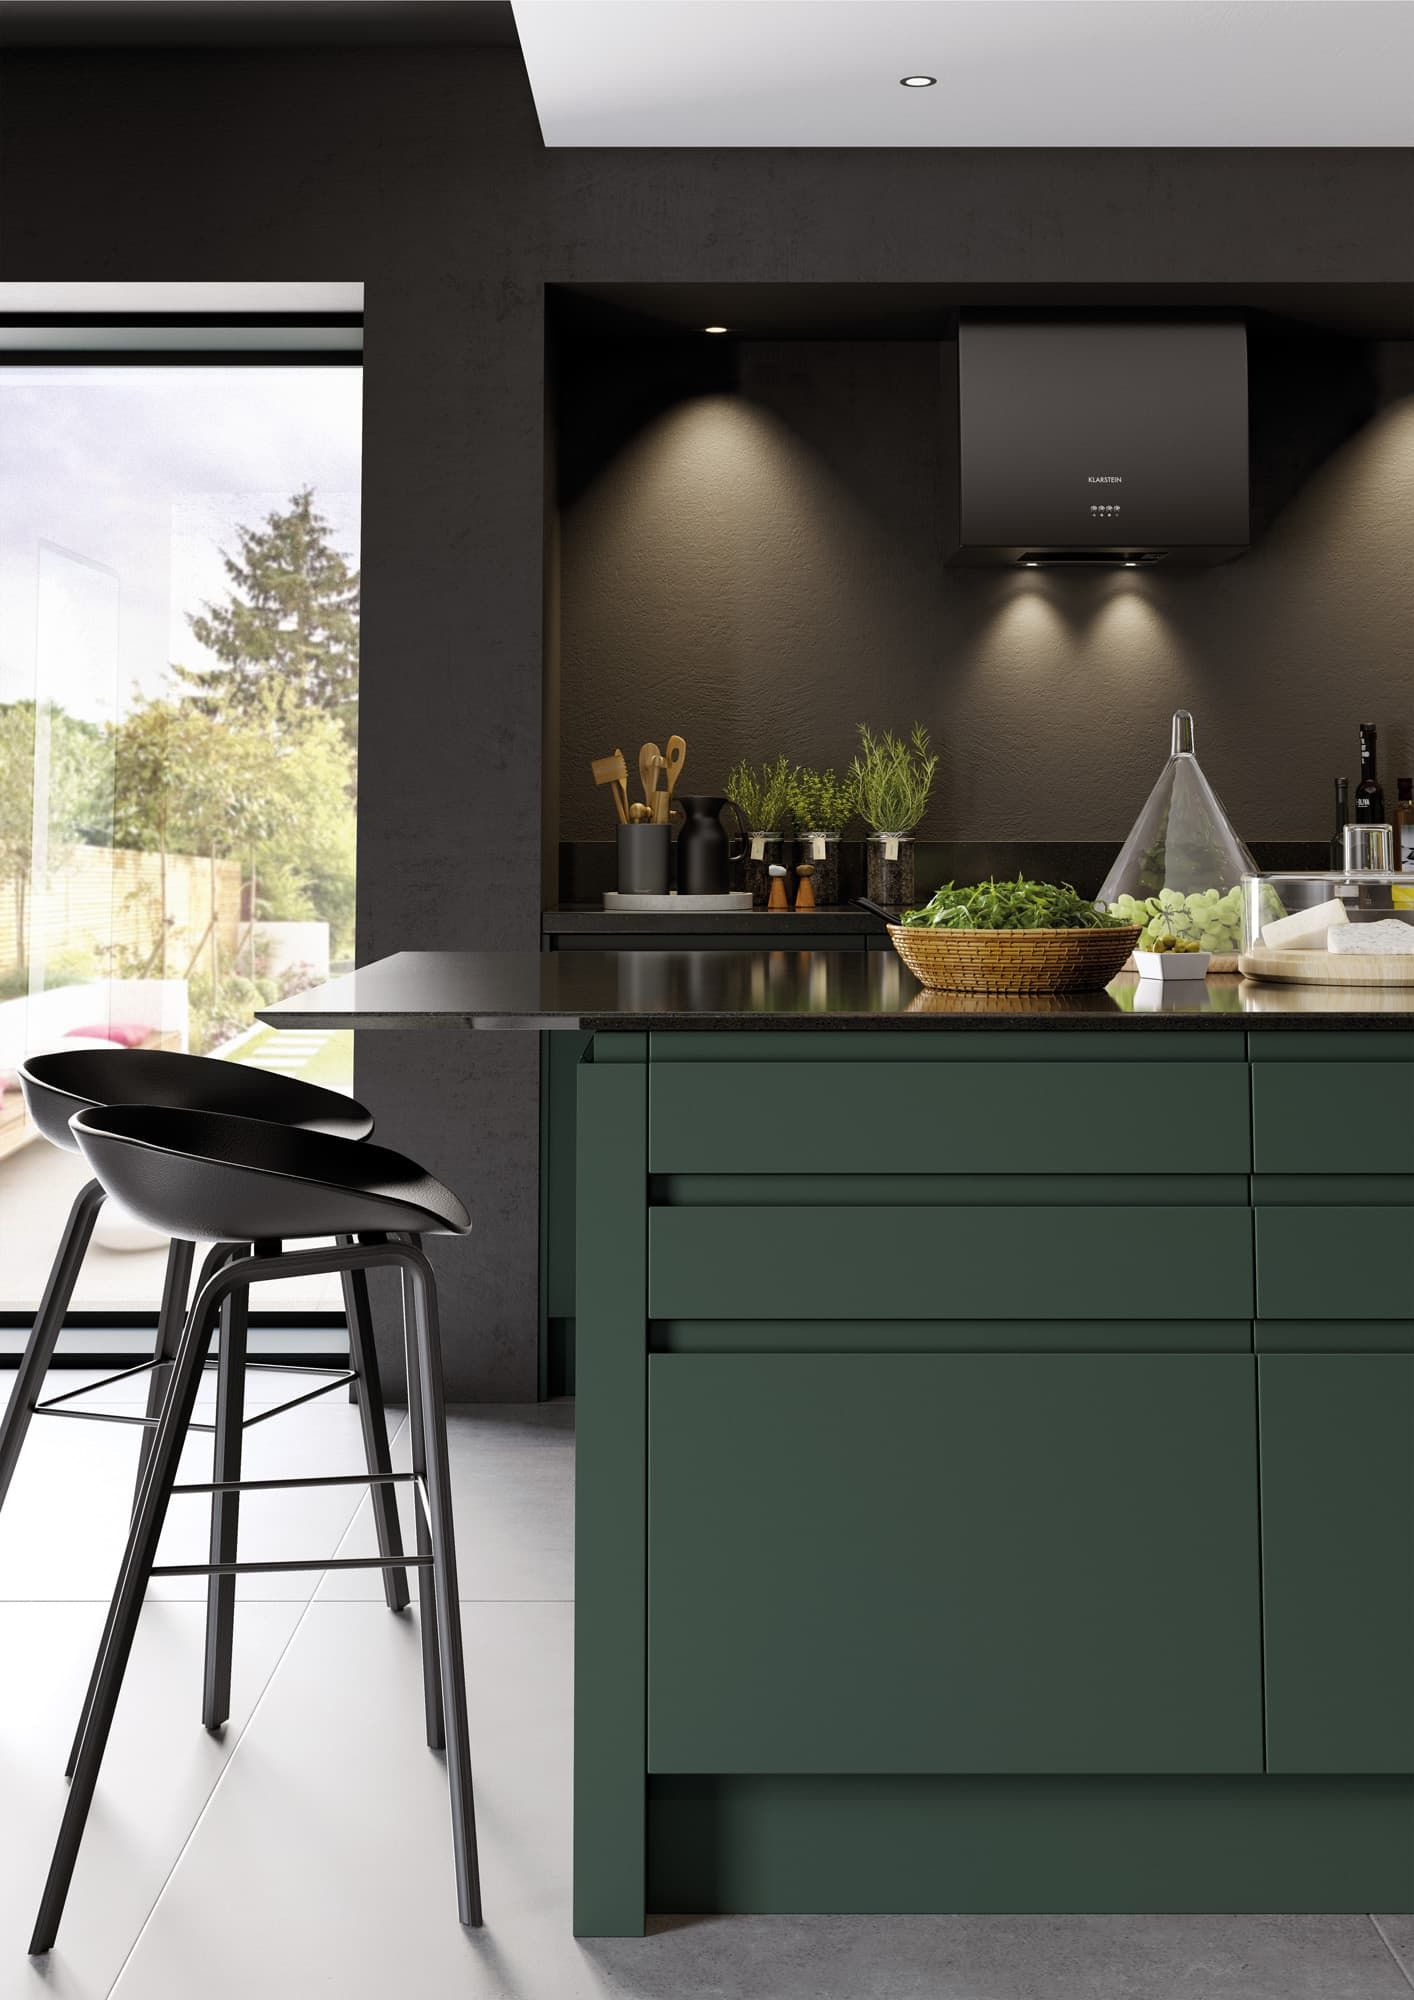 fitted kitchens in birmingham handleless kitchen green kitchen designs dark green kitchen on kitchen ideas with dark cabinets id=84107